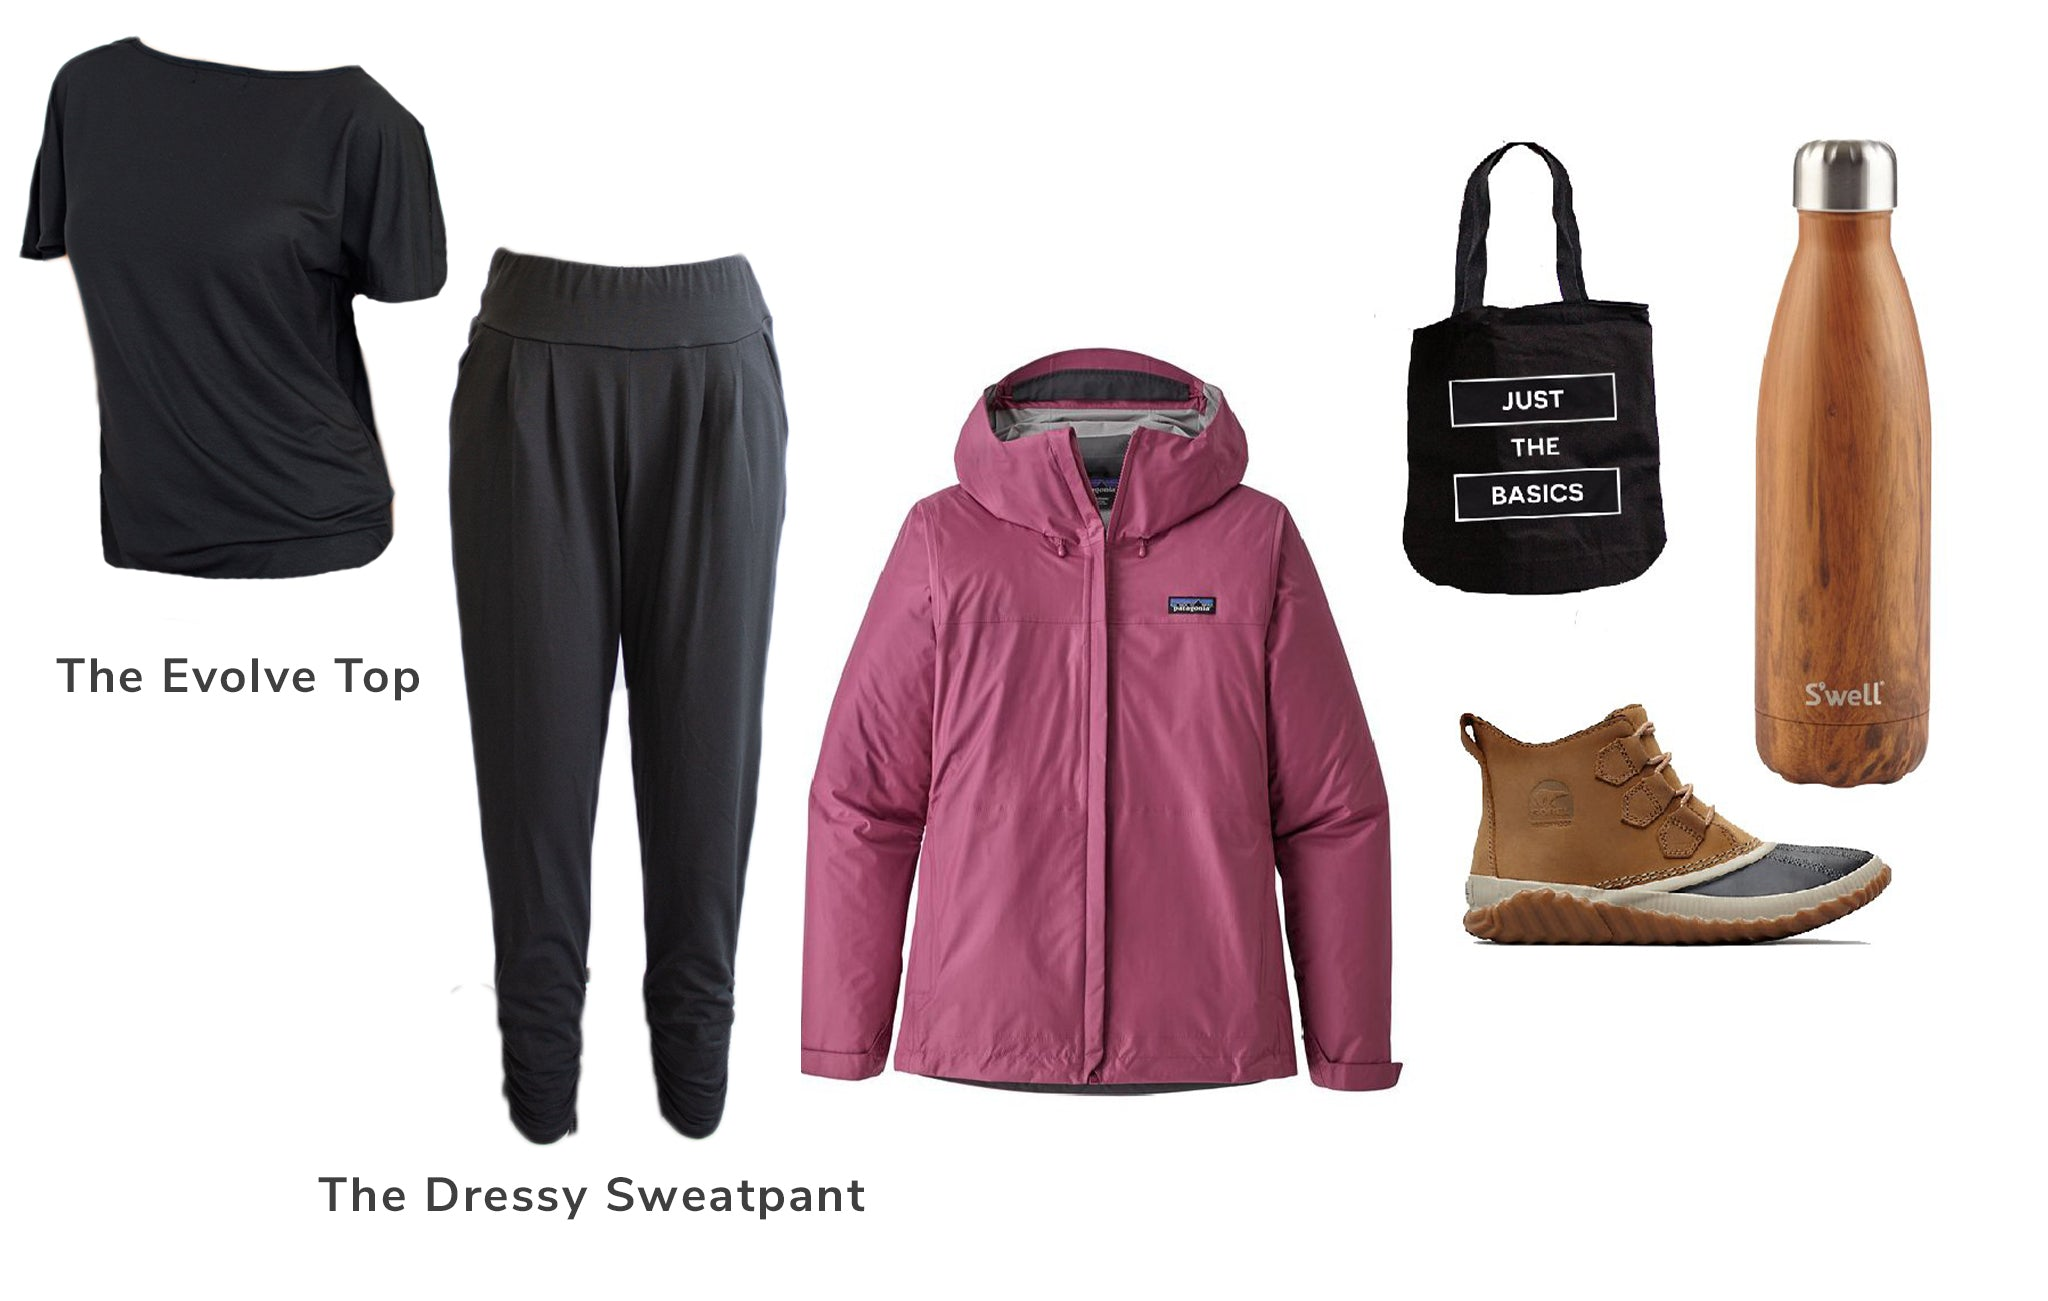 Cottage Outfit. Evolve Top, Dressy Sweatpant, Jacket, Boots